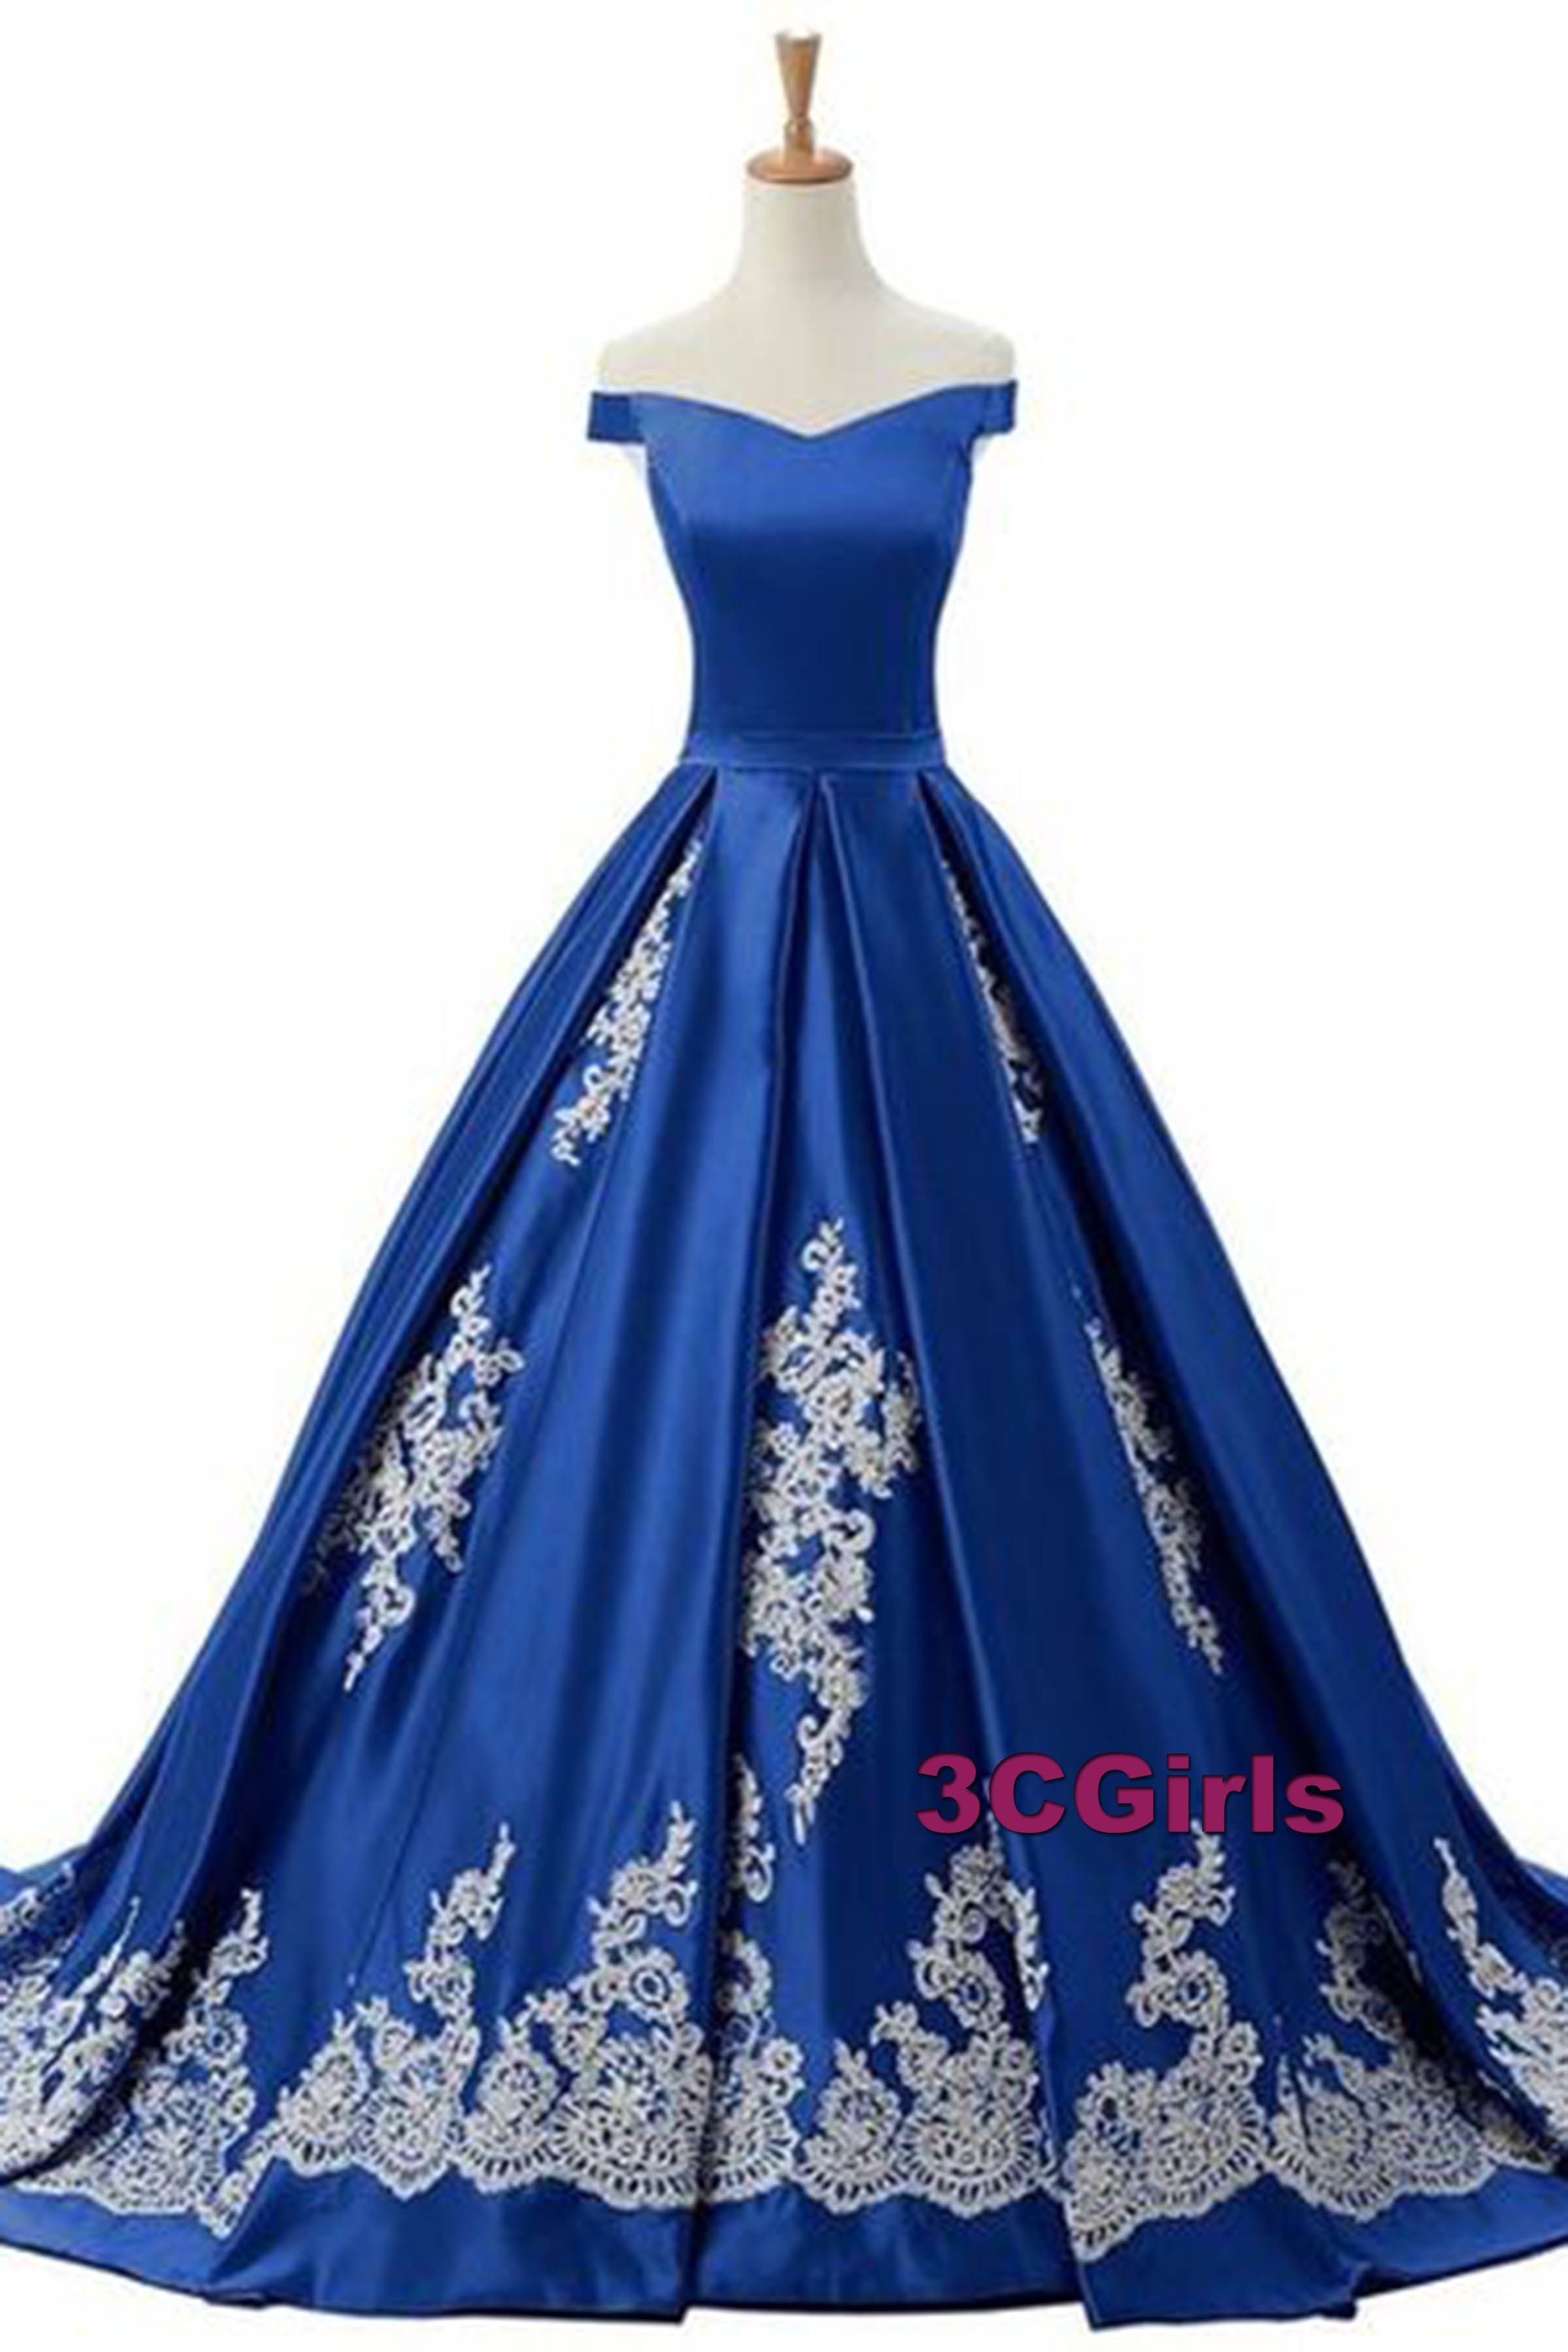 Vintage prom dress offshoulder ball gown beautiful navy blue